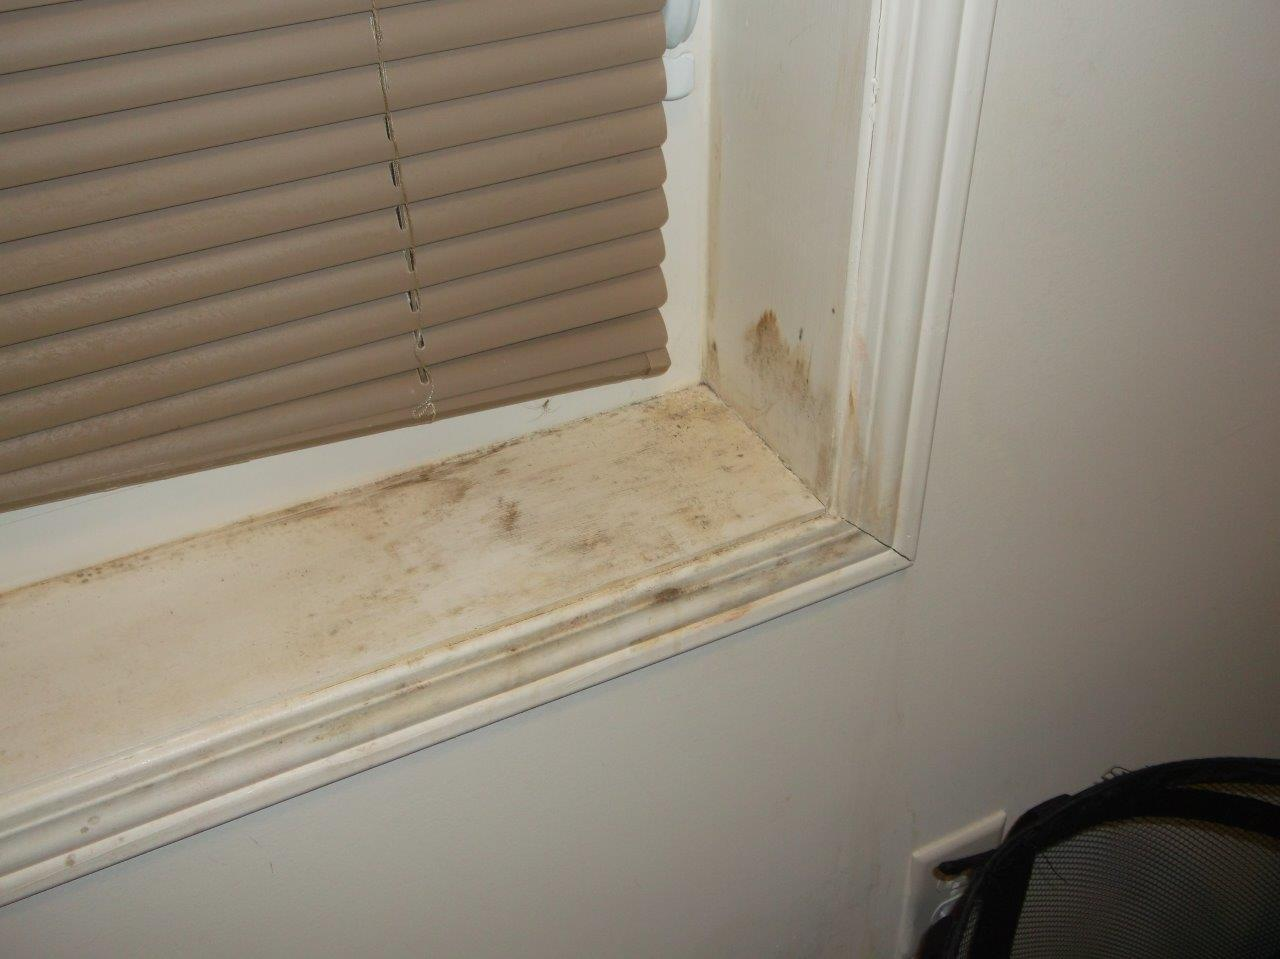 Mold on Windows